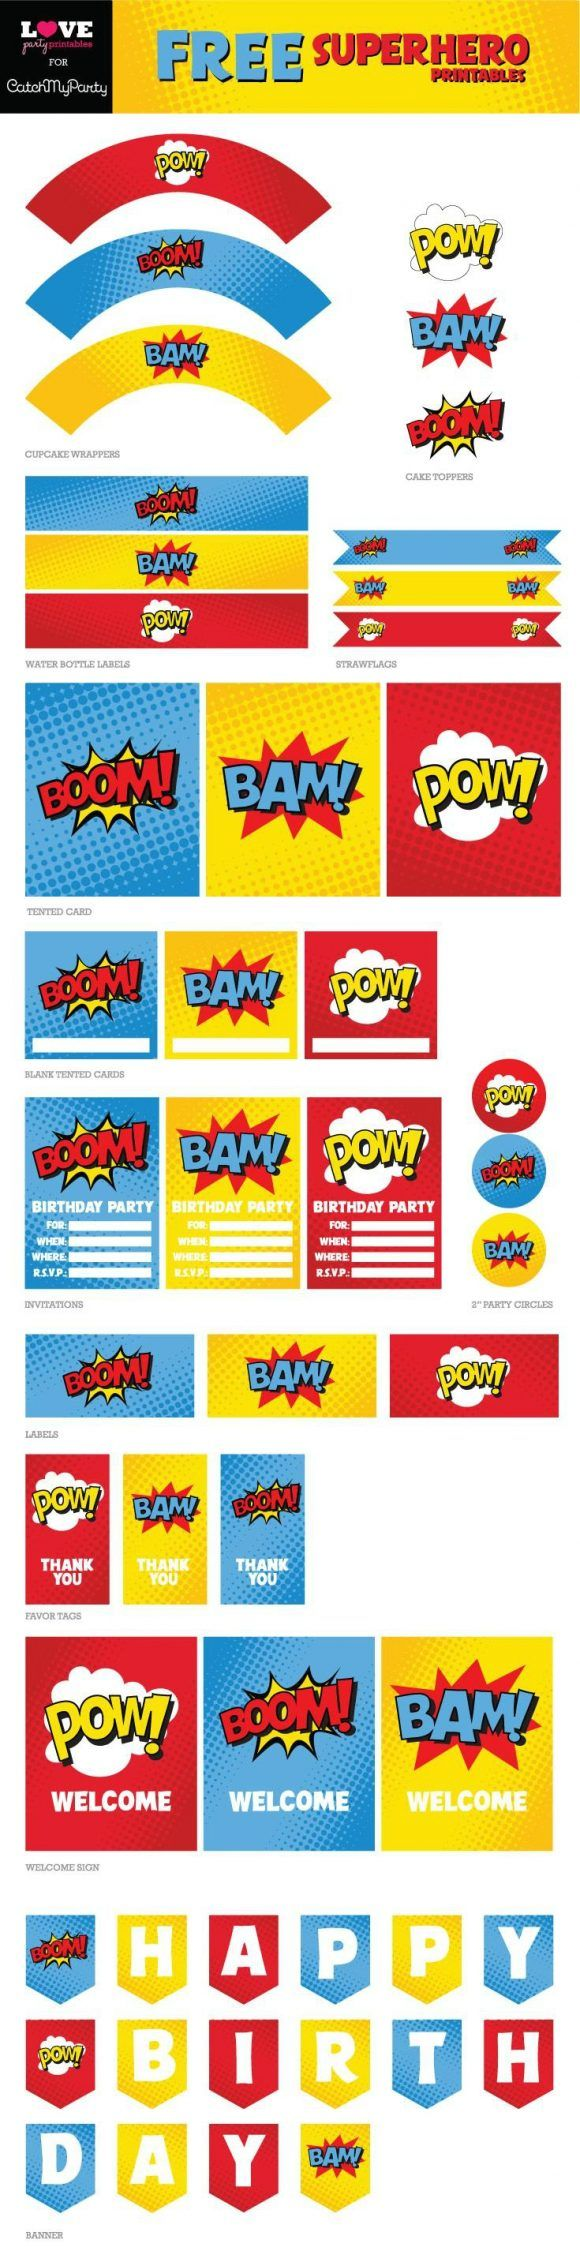 free printable birthday party signs ; 6c697f983a1bf1a5e7d2357ff0ca08aa--vintage-comic-books-vintage-comics